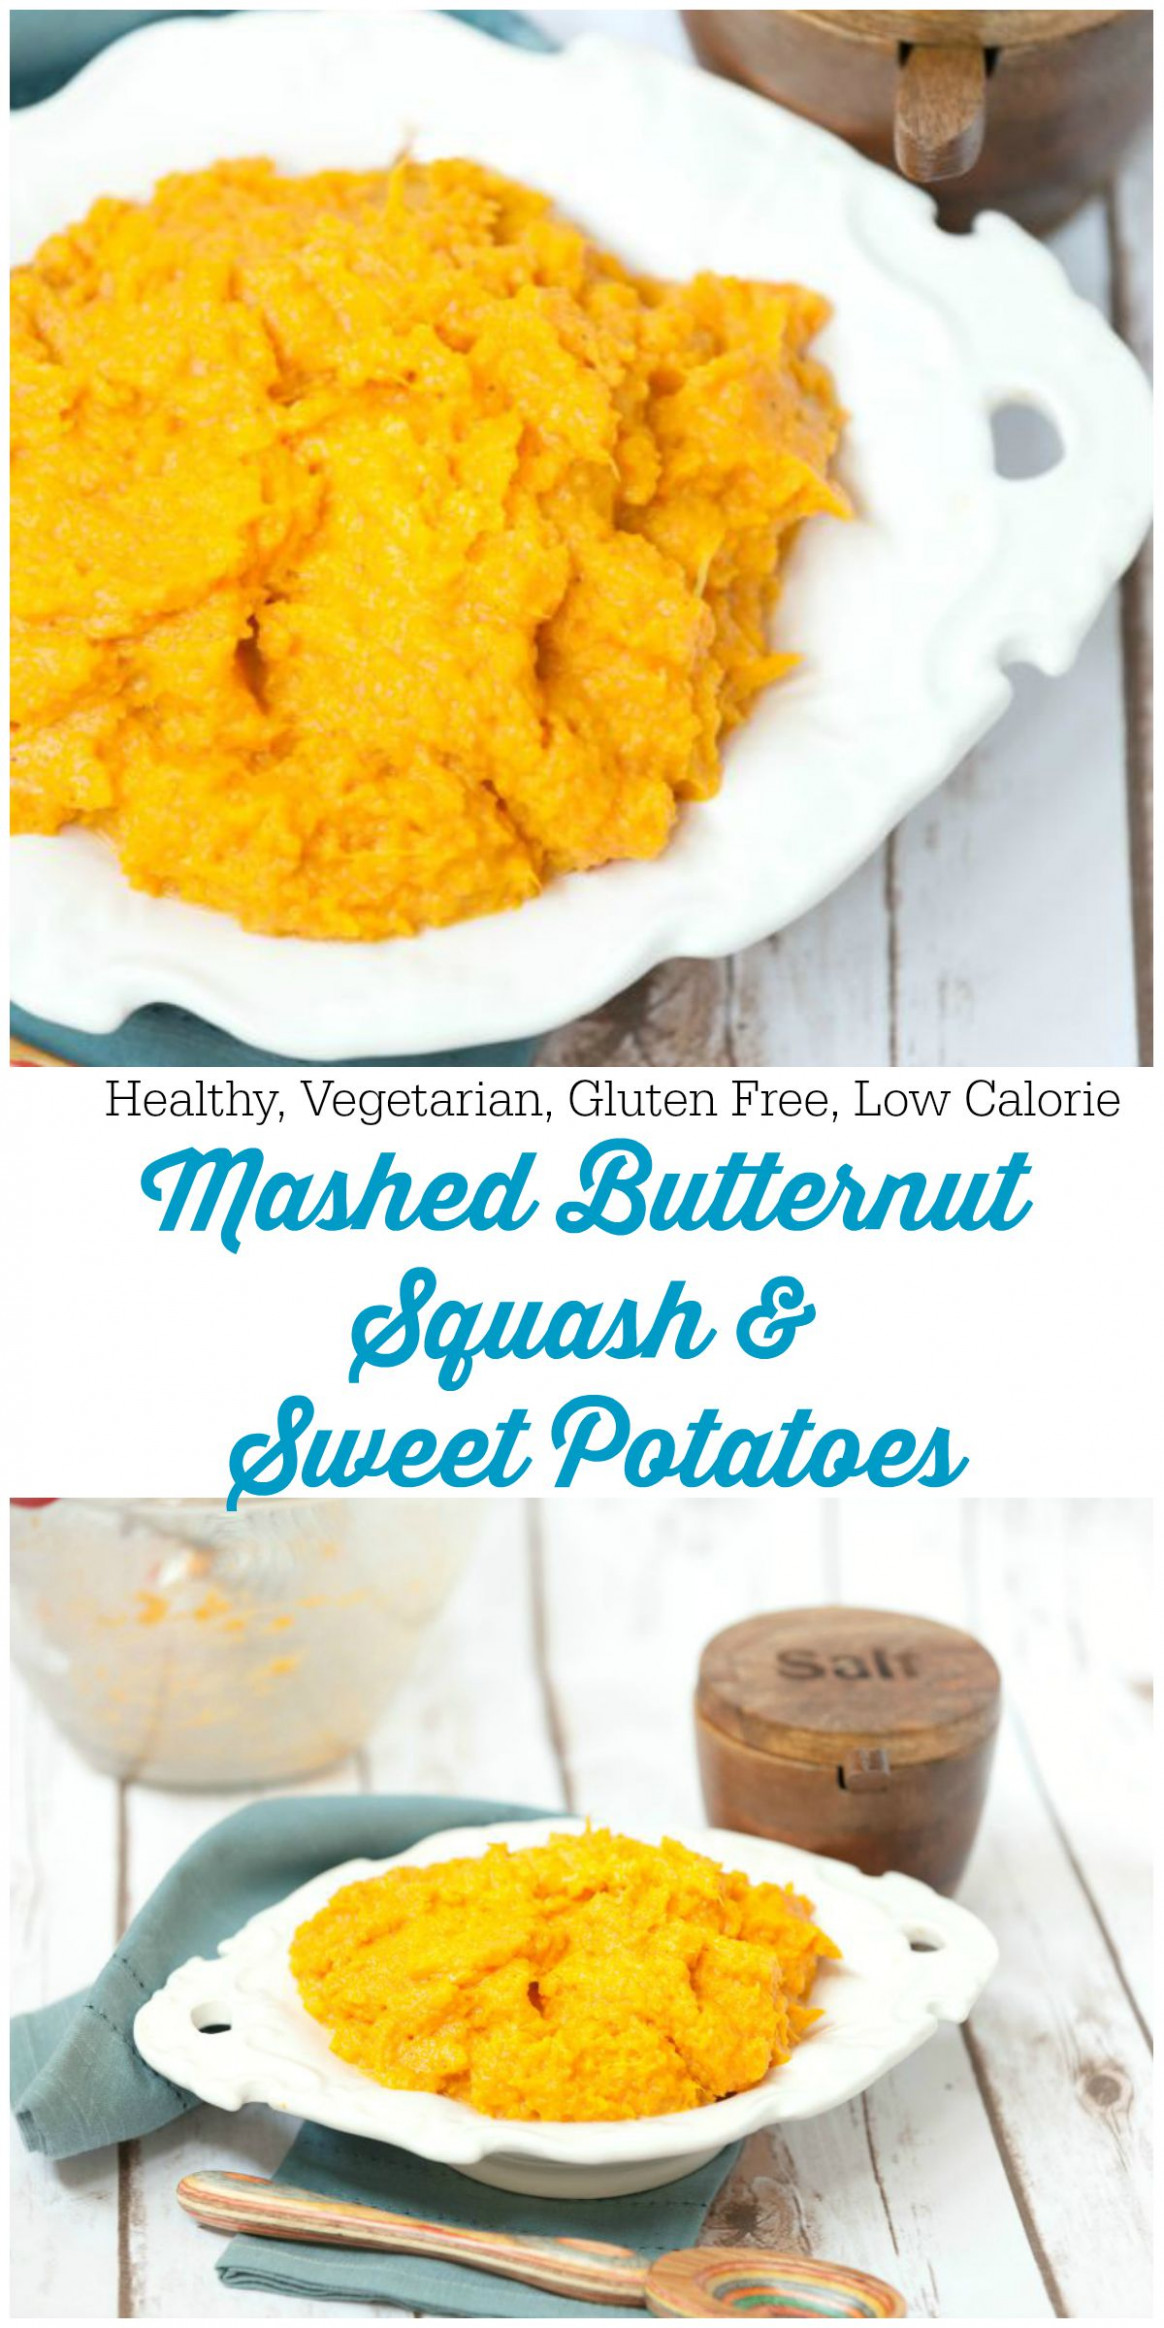 Healthy Mashed Butternut Squash and Sweet Potatoes | Food ..